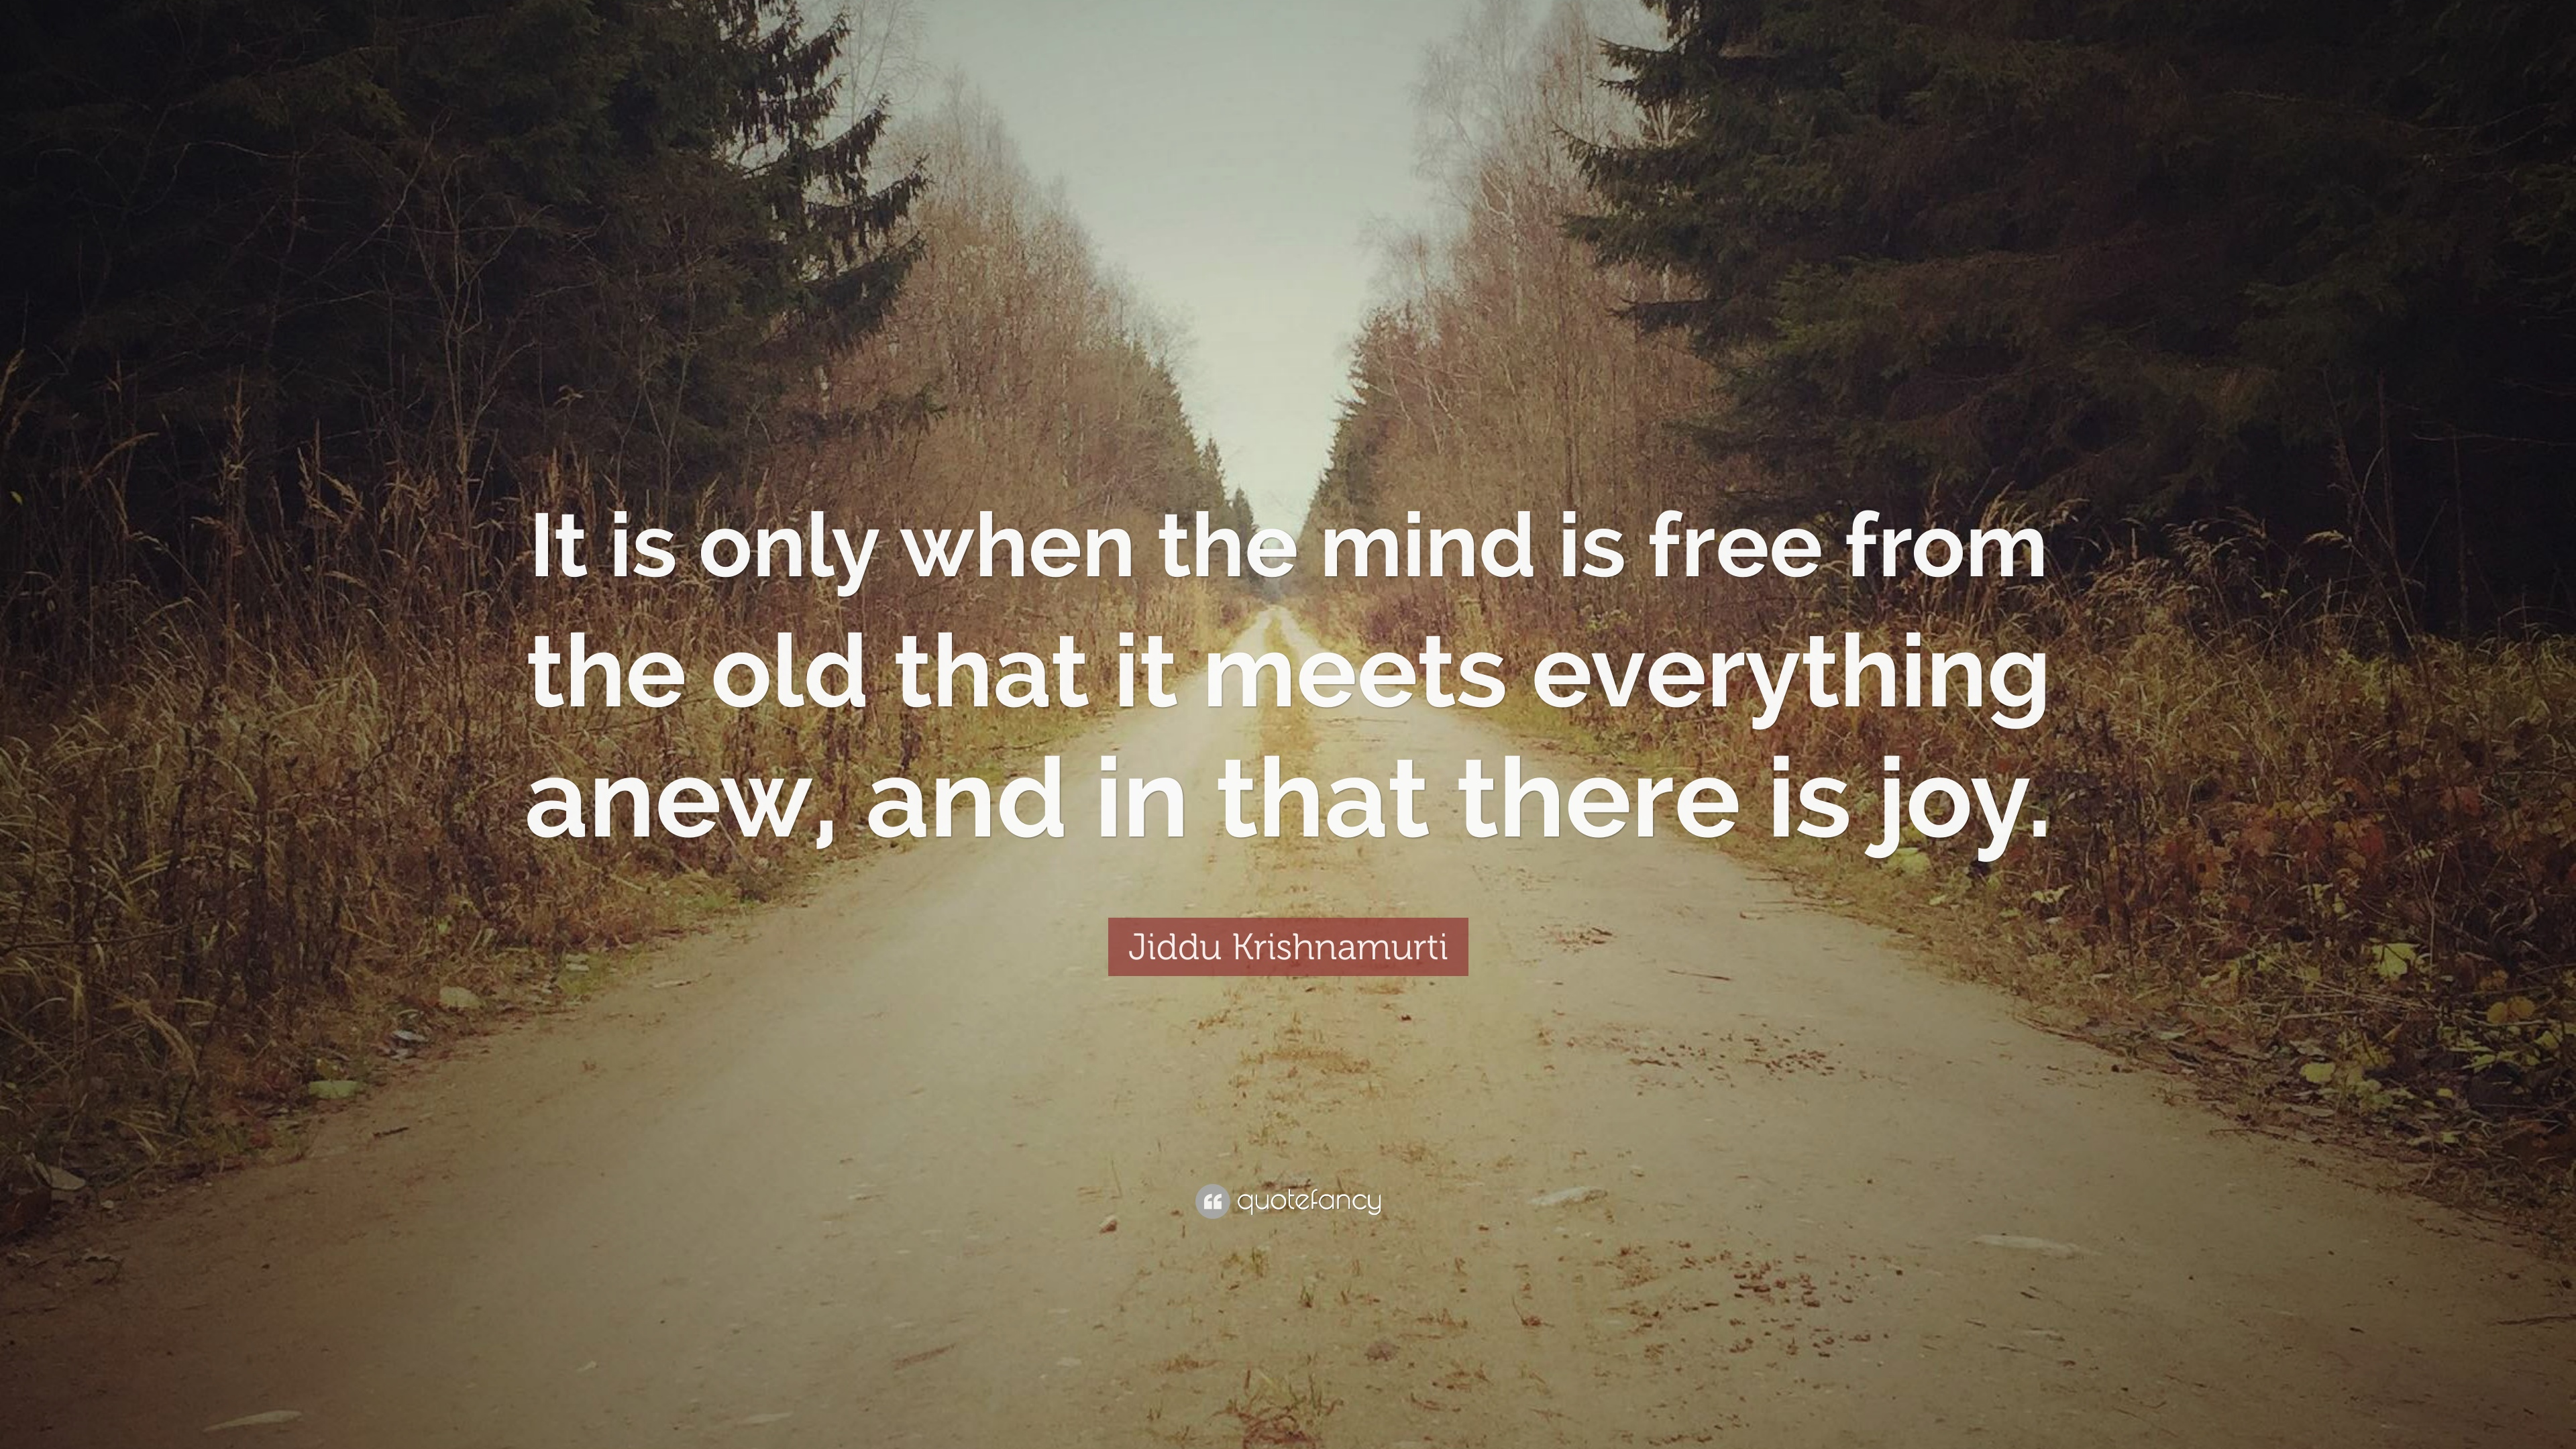 Jiddu Krishnamurti Quote It Is Only When The Mind Is Free From The